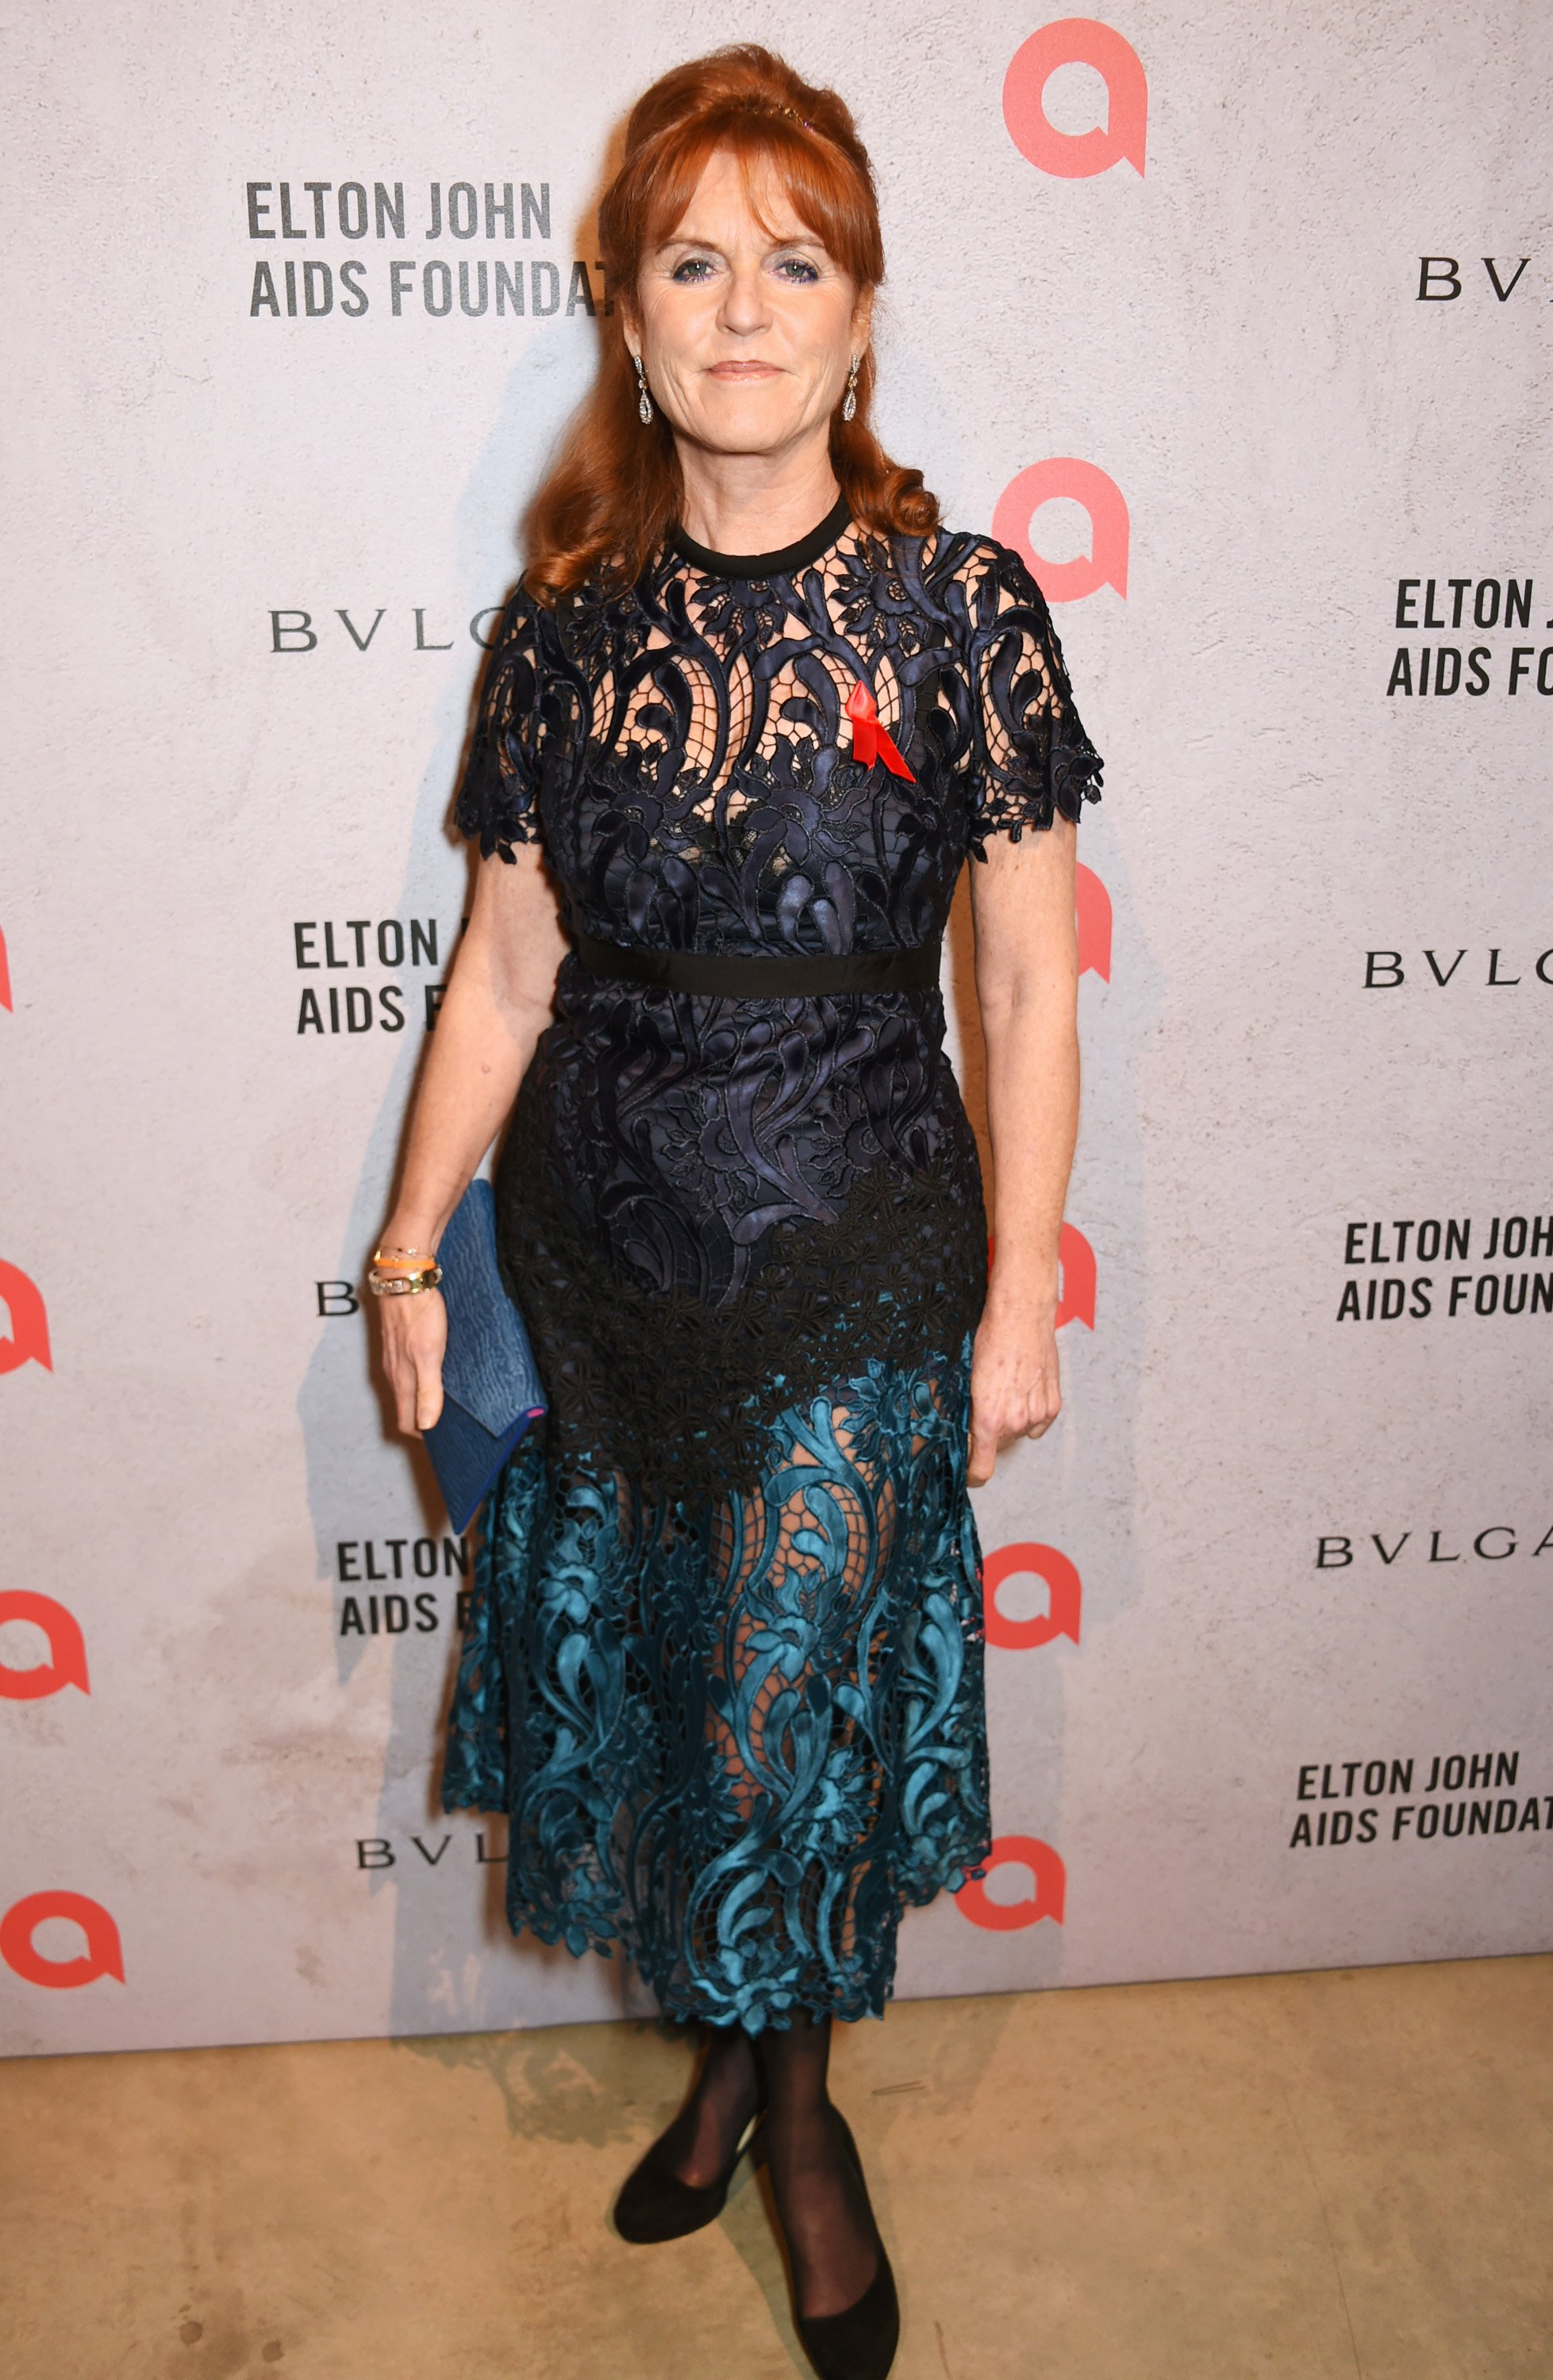 Sarah Ferguson attends the annual Elton John AIDS Foundation's Oscar viewing party | Photo: Getty Images